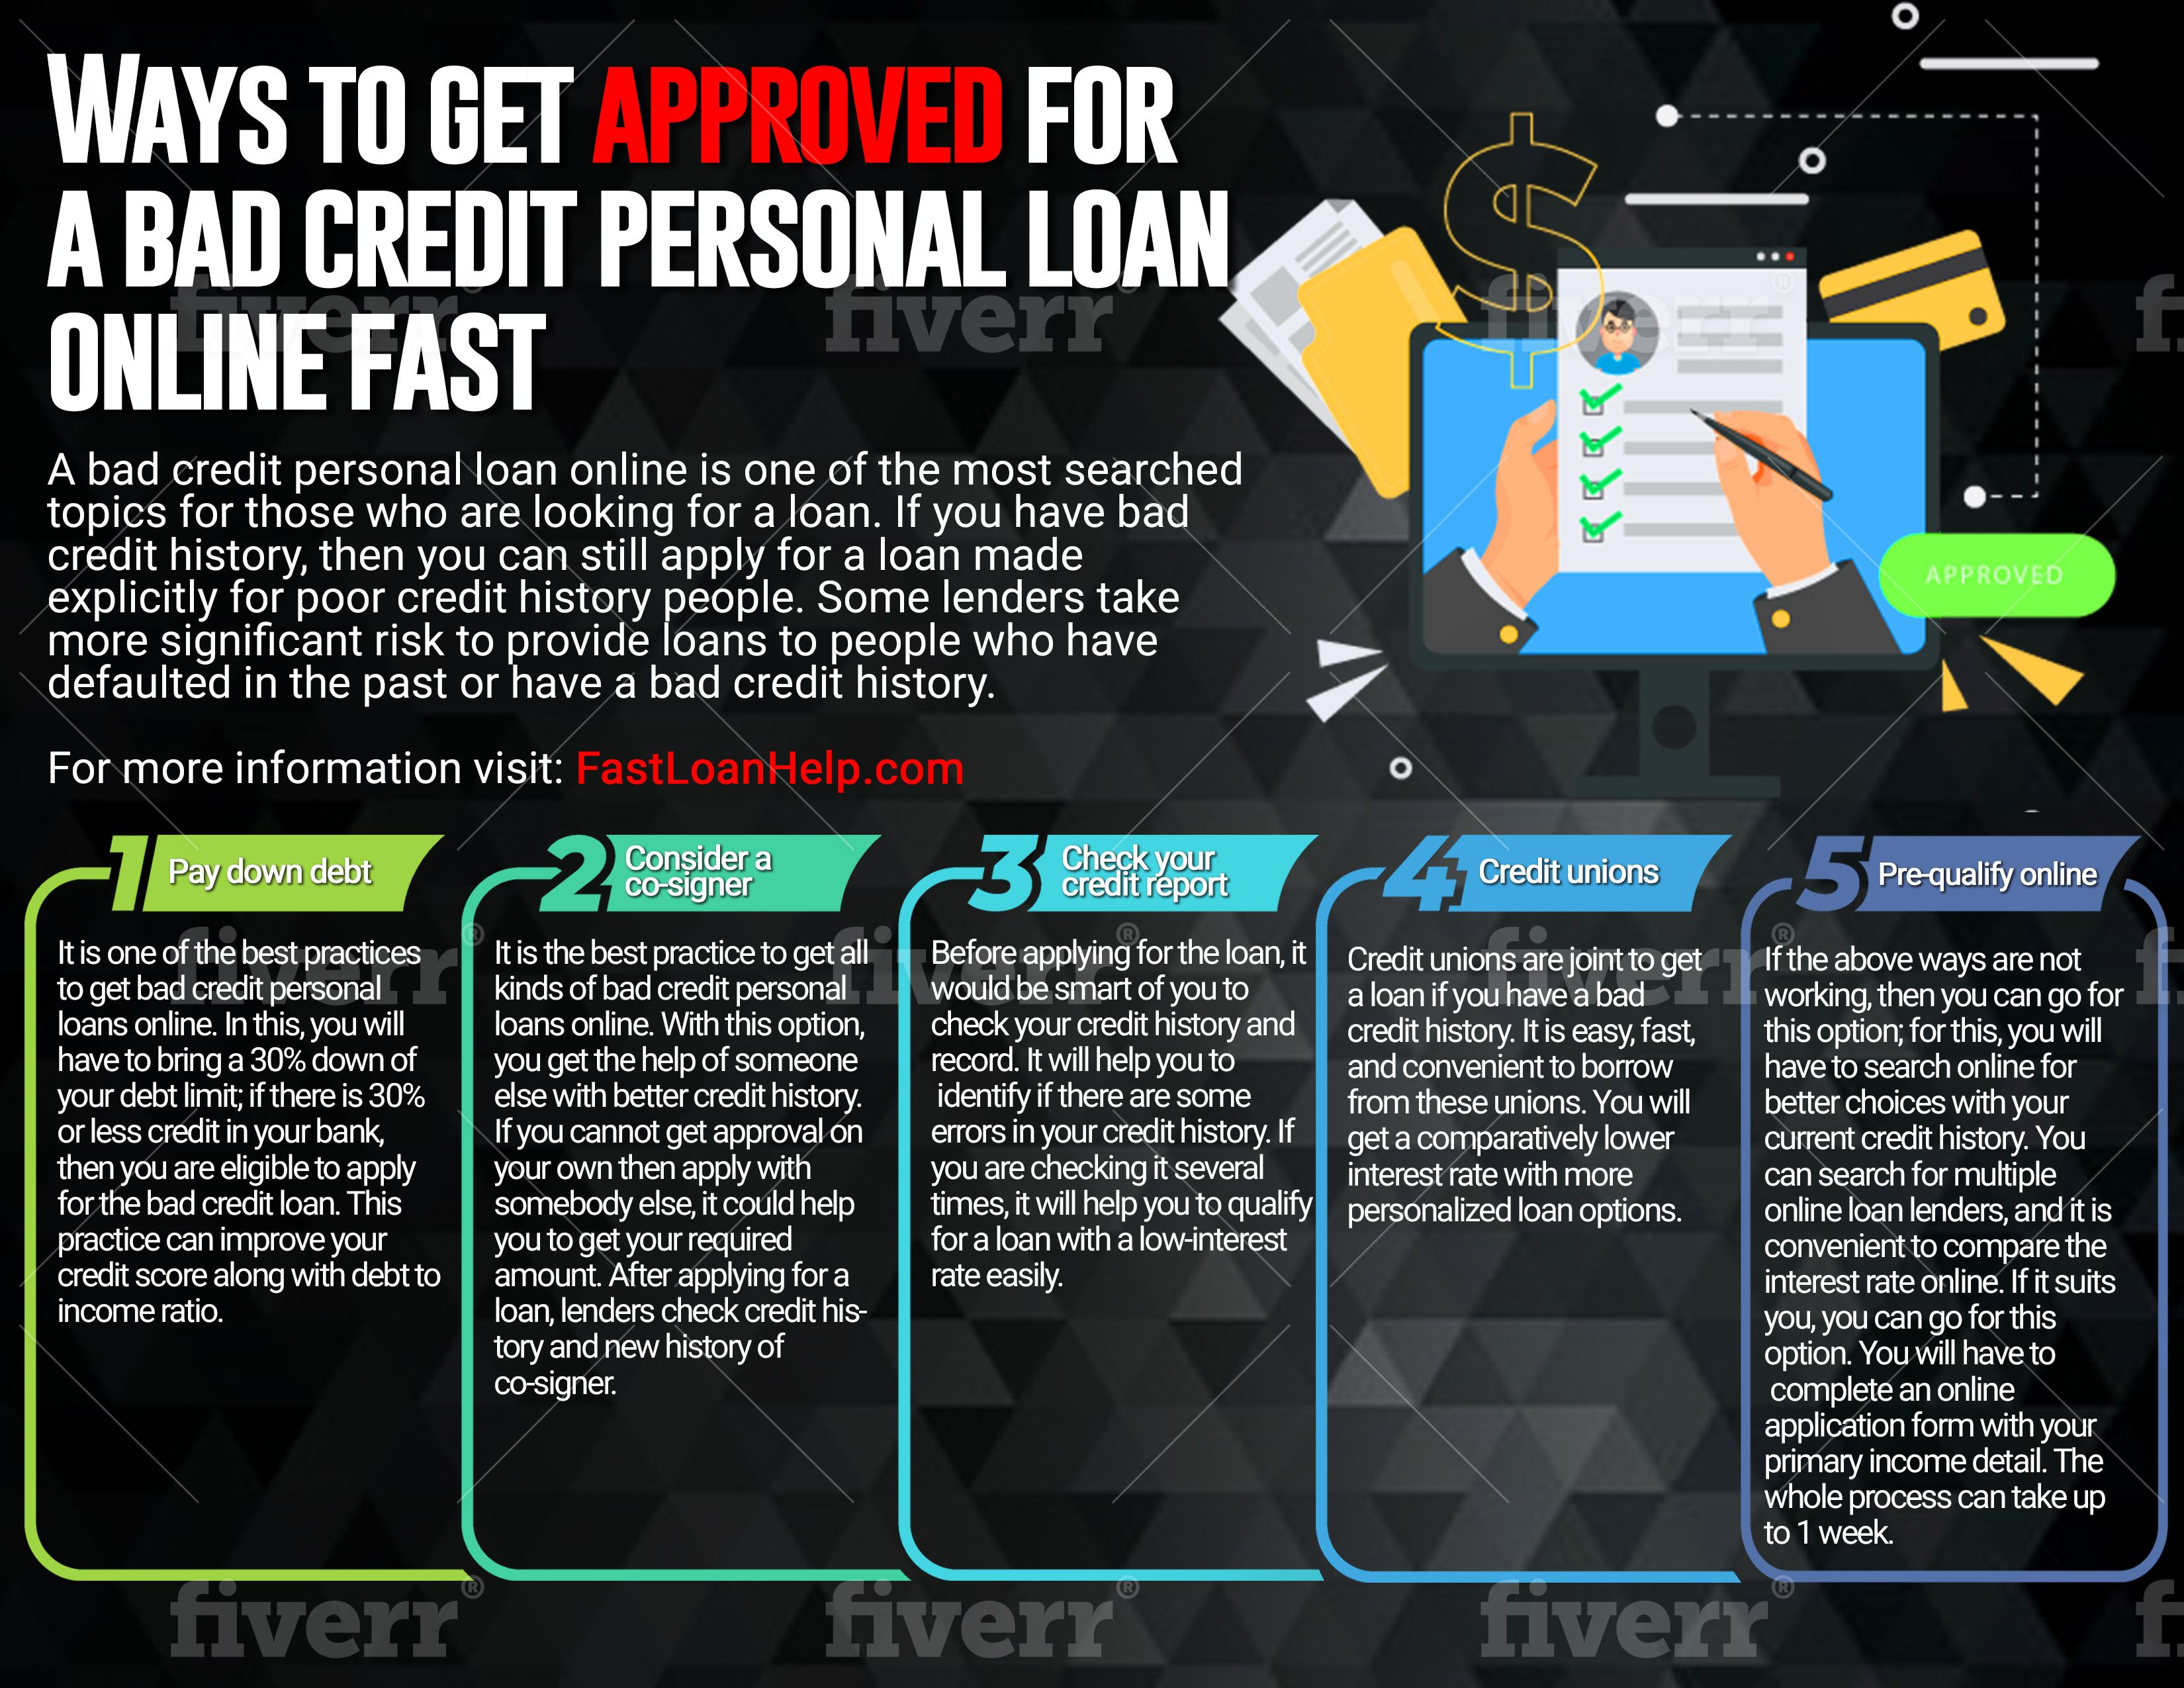 Fast Bad Credit Personal Loans For People With Bad Credit In 2020 Bad Credit Personal Loans Personal Loans Bad Credit